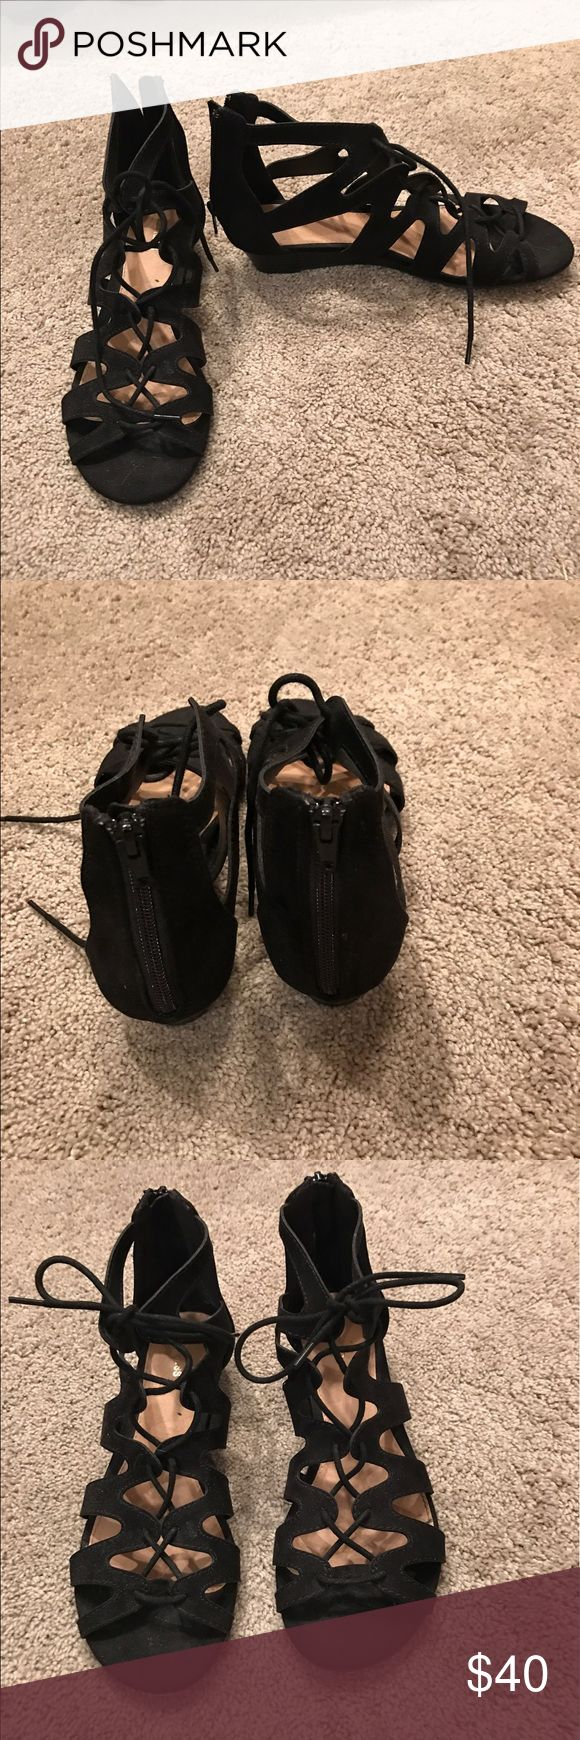 Express suede gladiator flats In excellent condition worn twice! Express Shoes Sandals